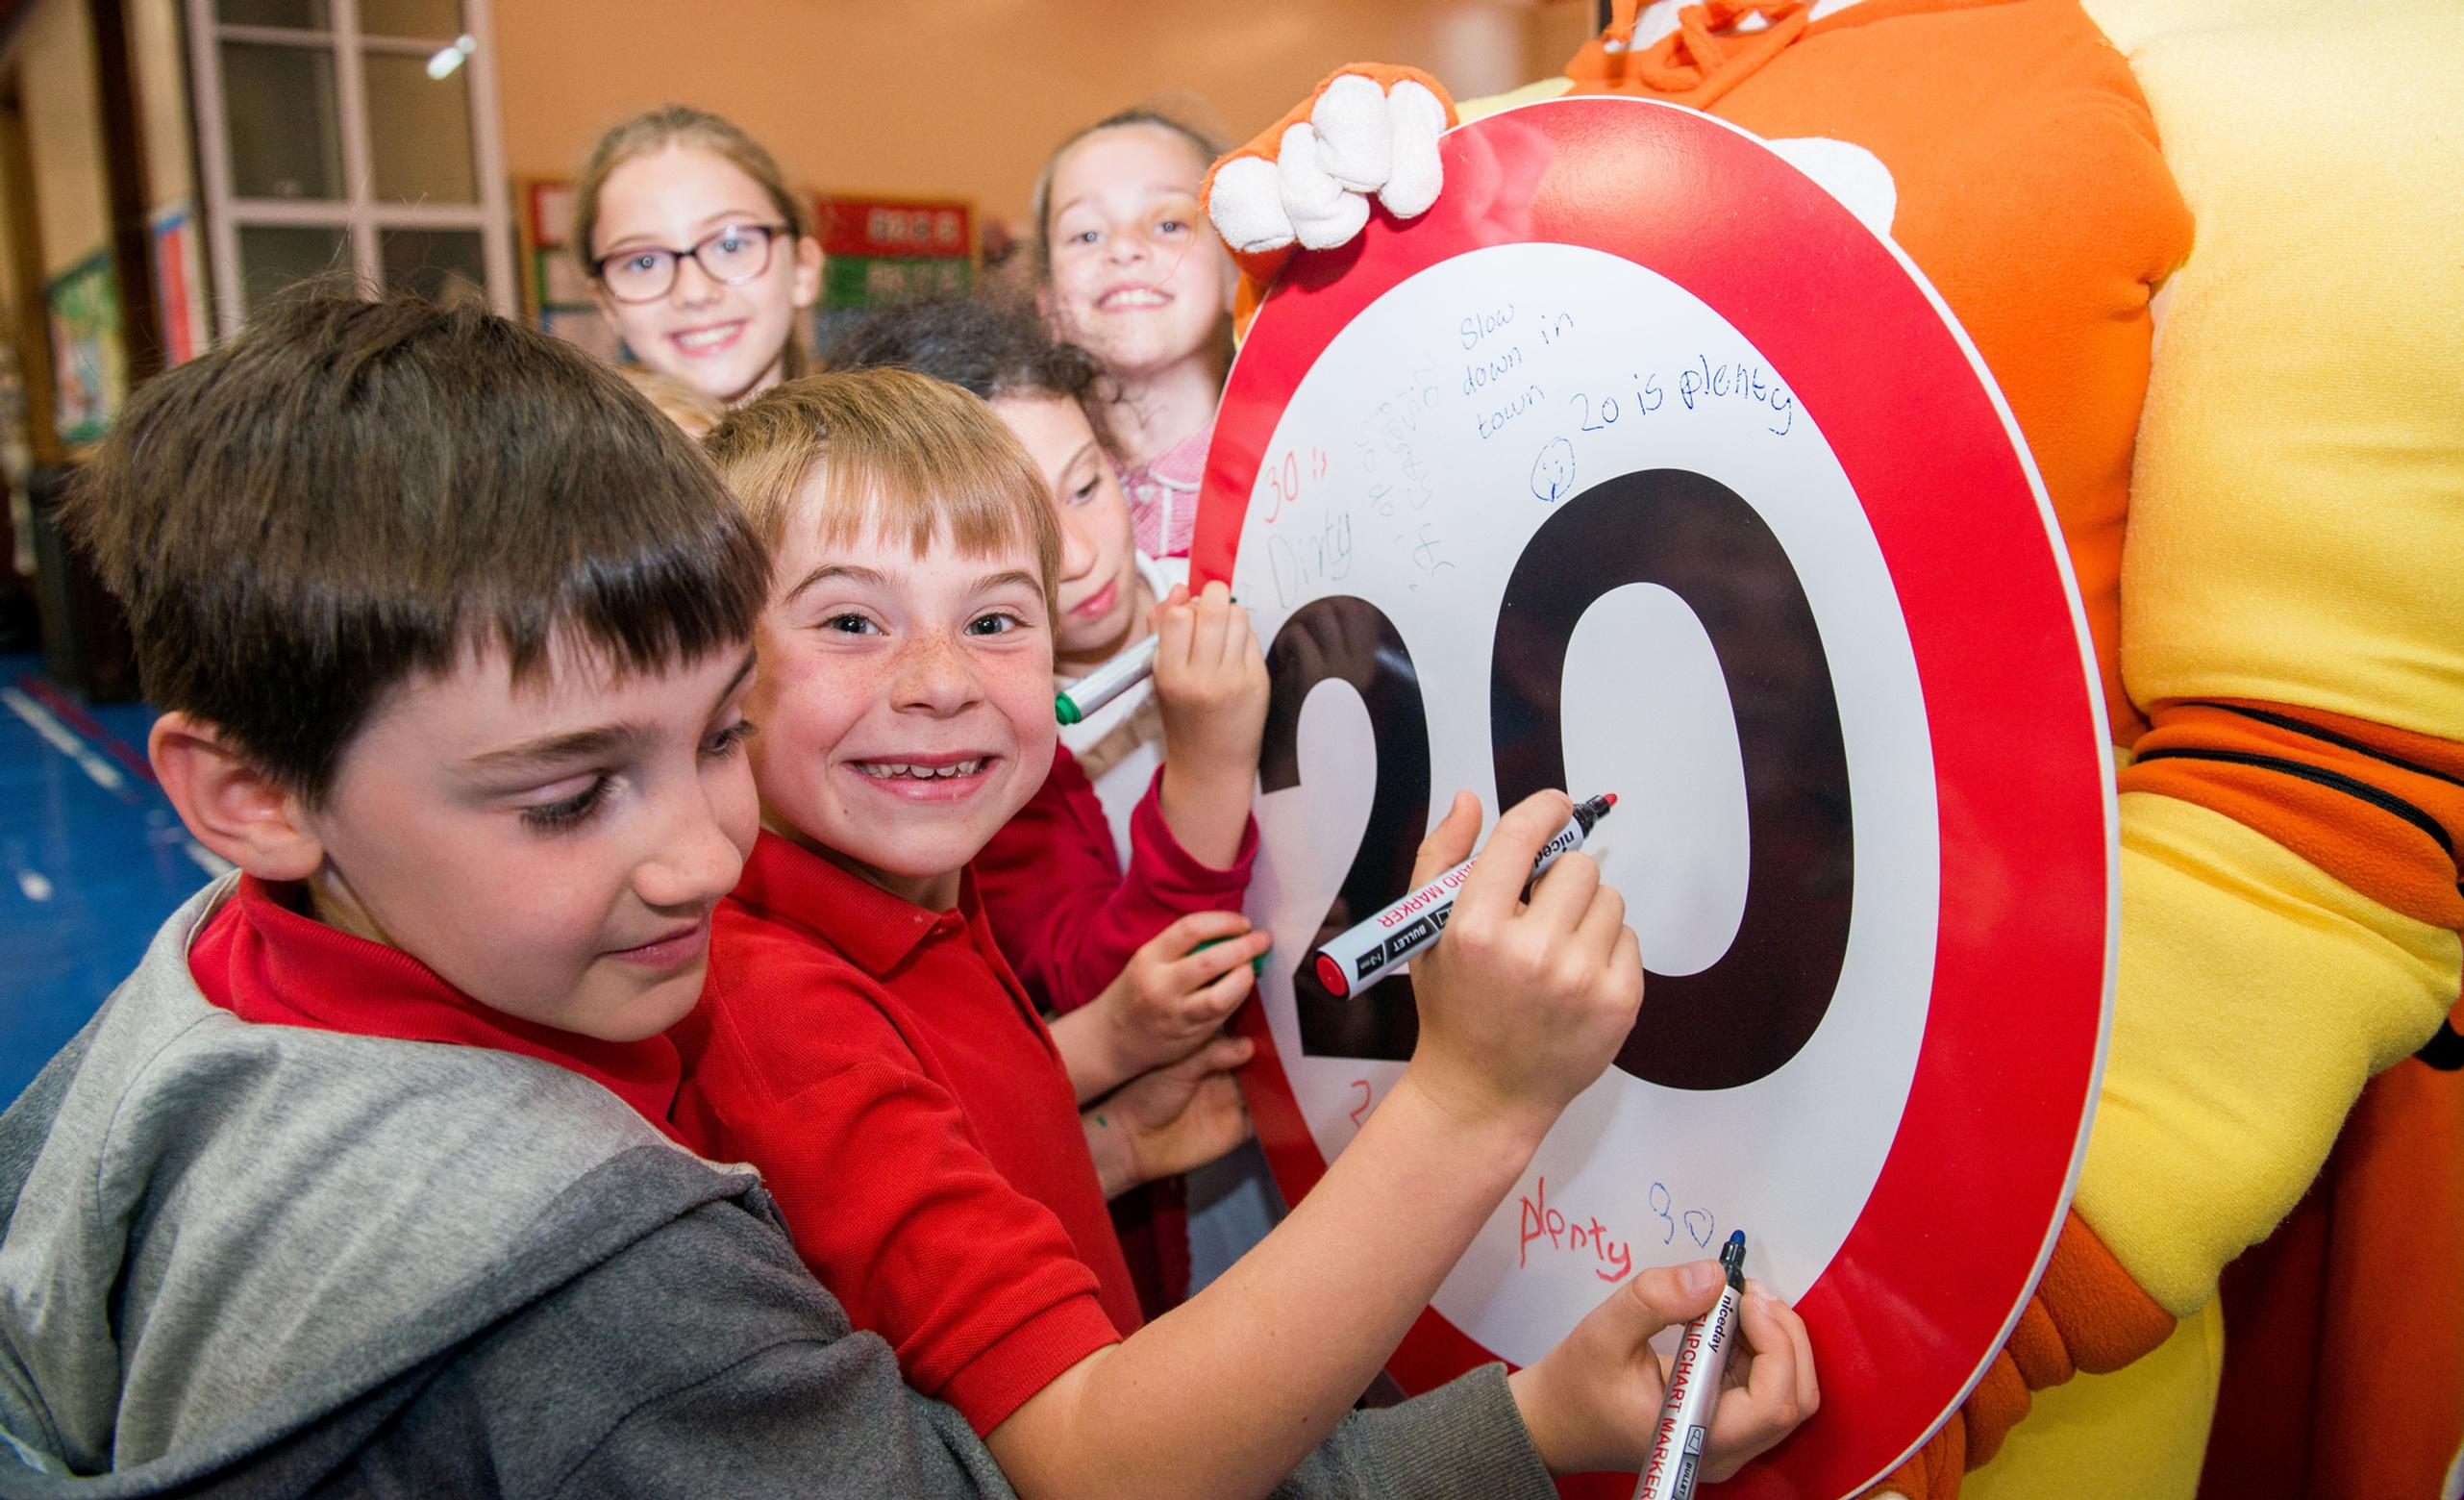 Edinburgh school children promote 20mph culture